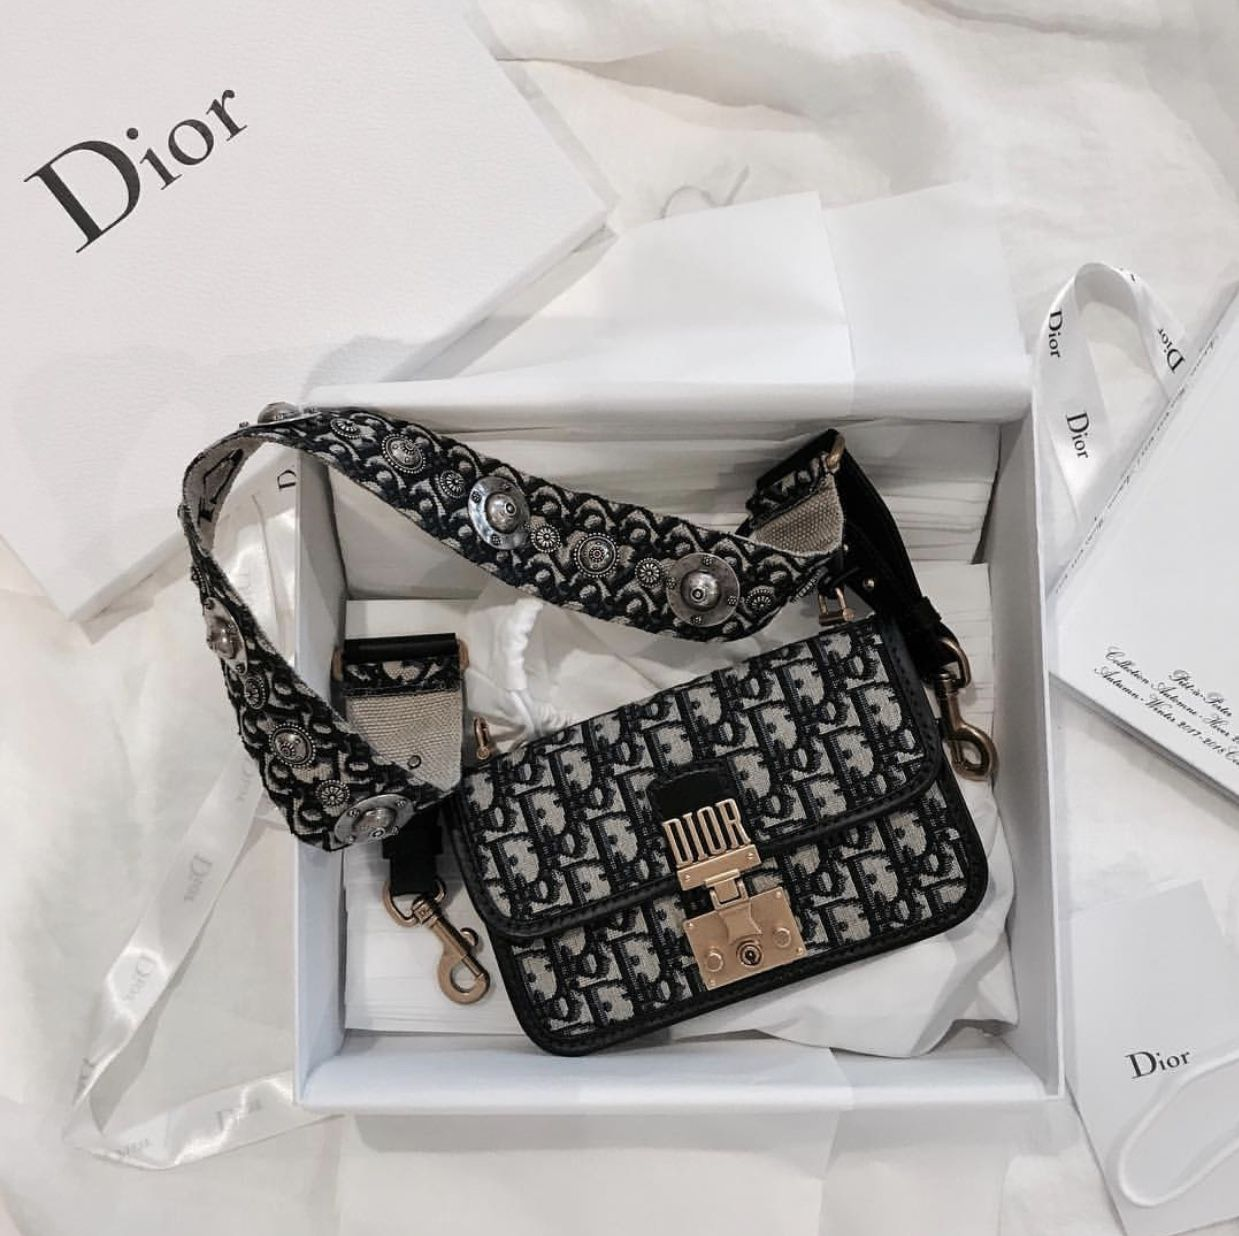 11961479c3 Dior Addict Flap Bag in Dior Oblique Canvas | I wear it! in 2019 ...